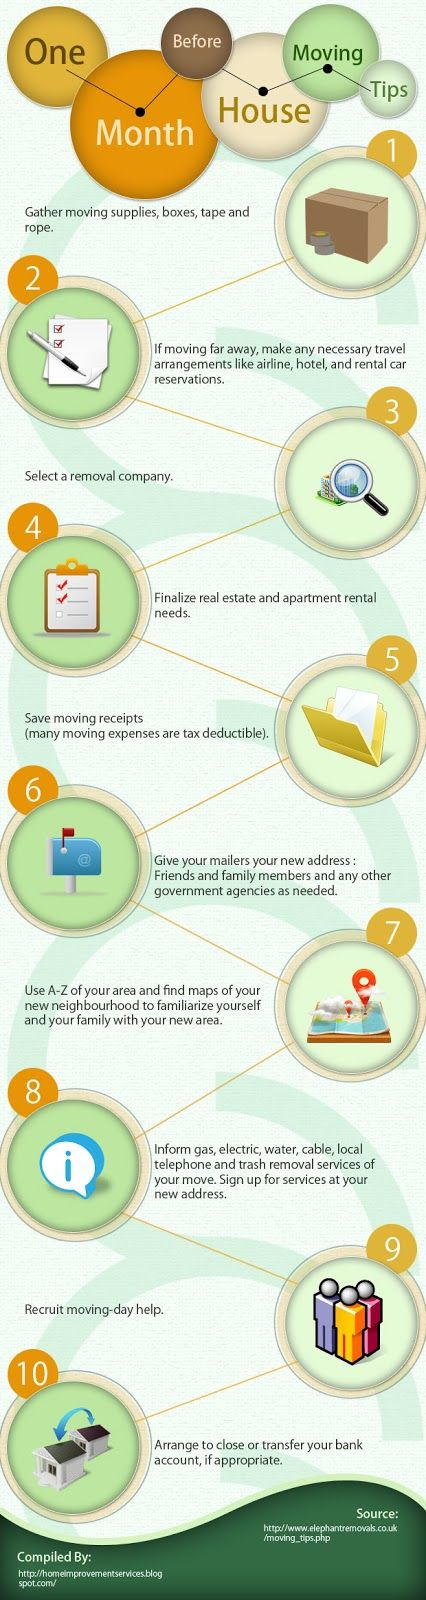 One Month Before House Moving Tips [Infographic].. this would have been helpful a year ago! But I'll pin it for future reference :)